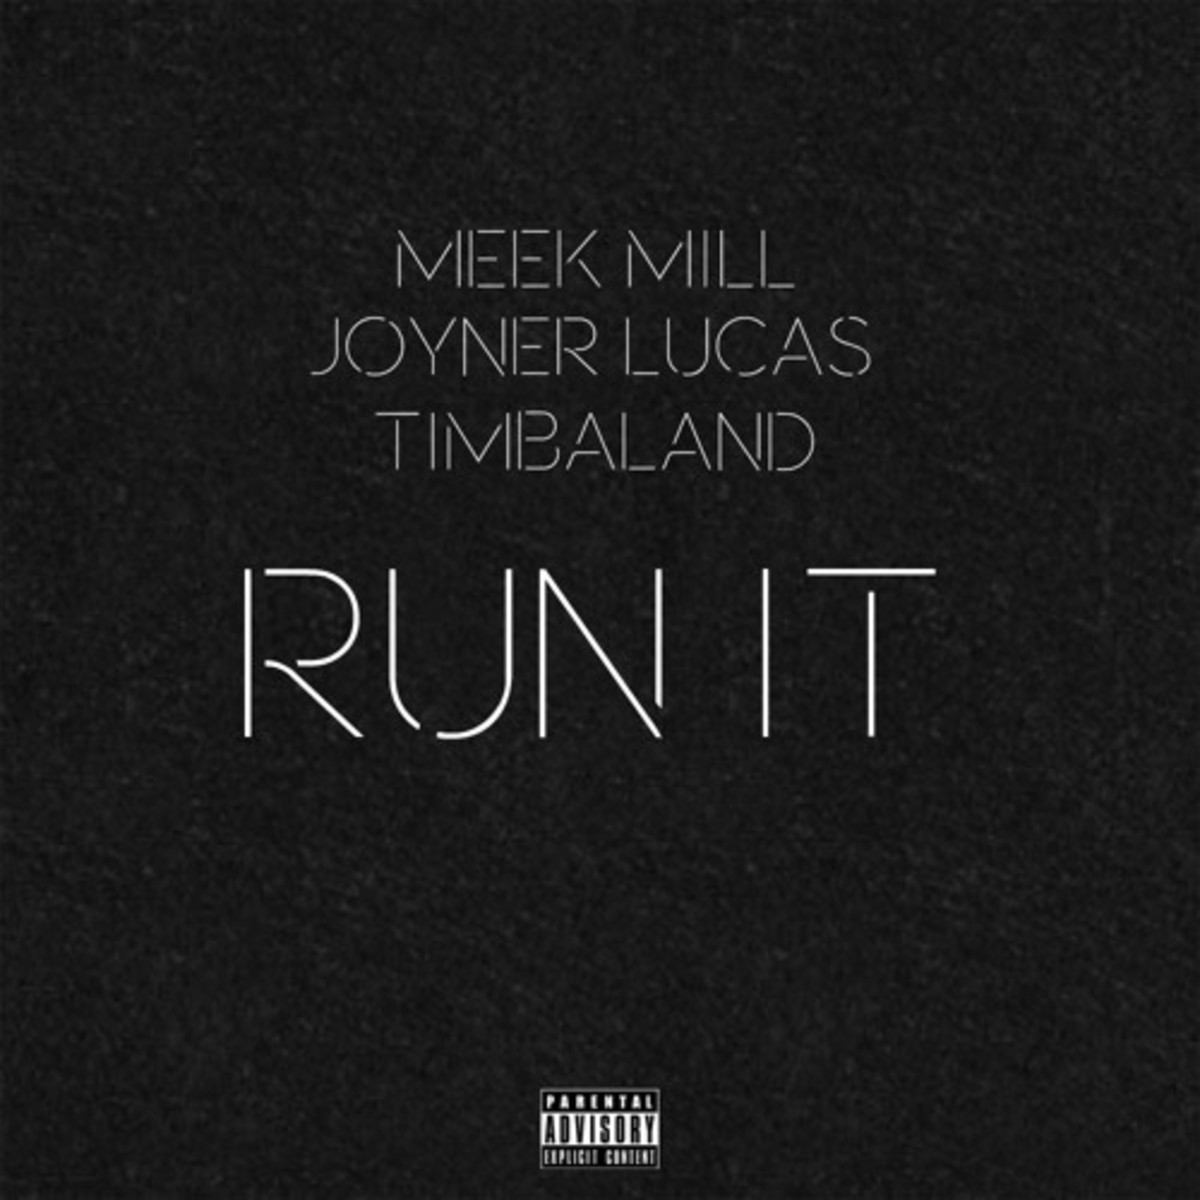 meek-mill-run-it.jpg